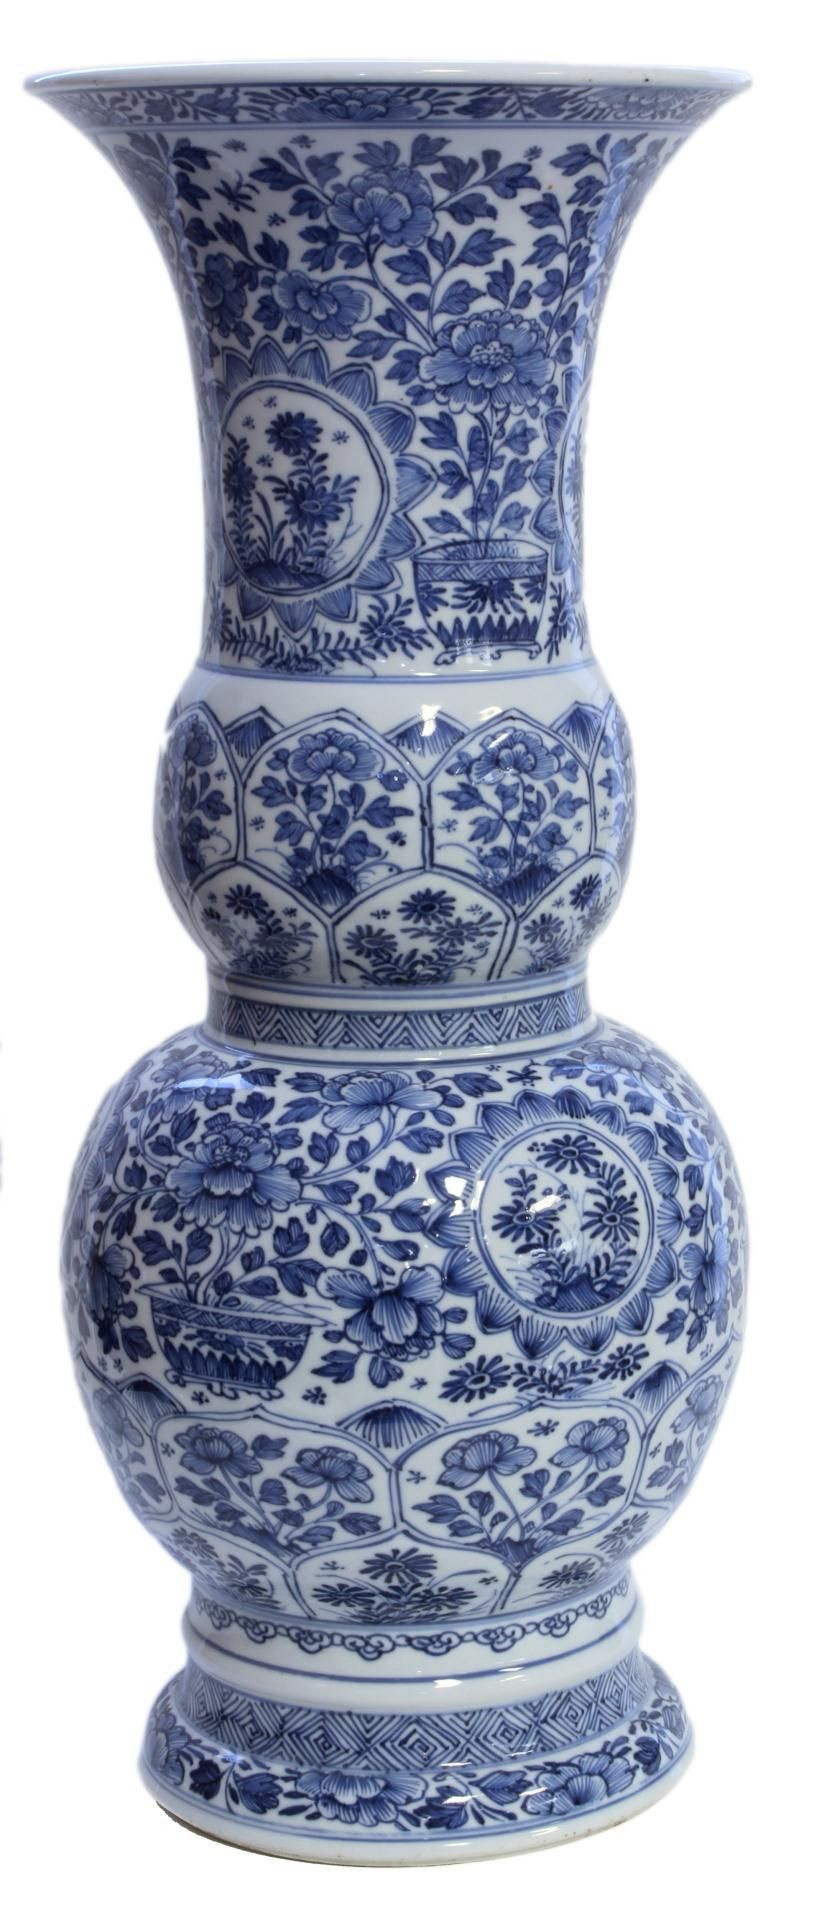 ancient chinese porcelain vase of chinese blue white kangxi period porcelain vase blue white in intended for chinese blue white kangxi period porcelain vase white vases blue and white china